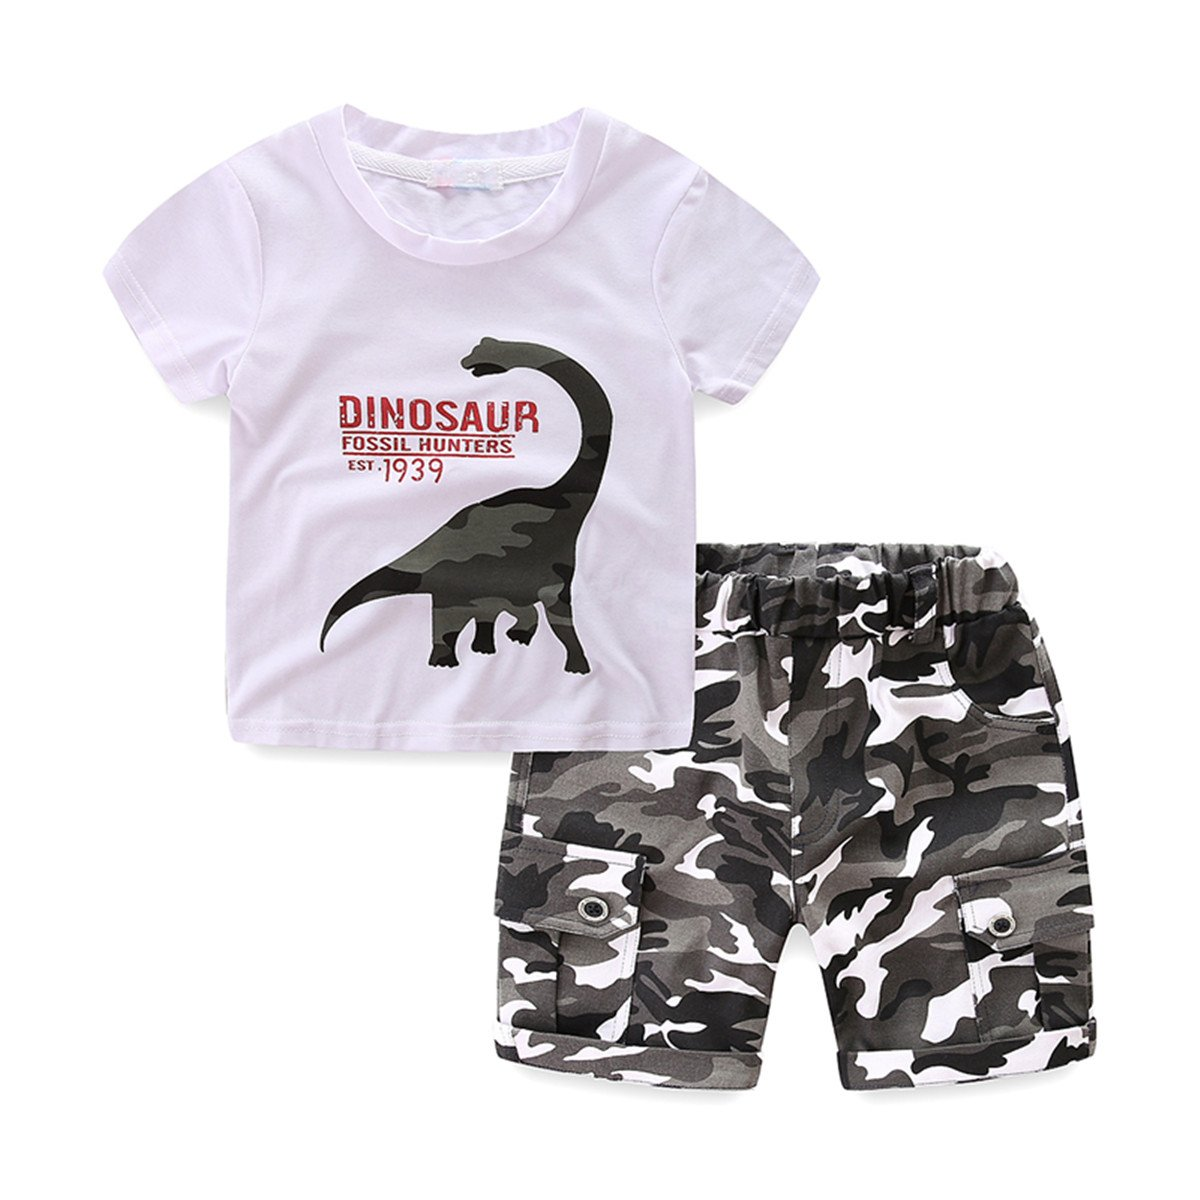 UWESPRING Boys Summer Sets Dinosaur T-shirt Camouflage Pant Suit 4T White